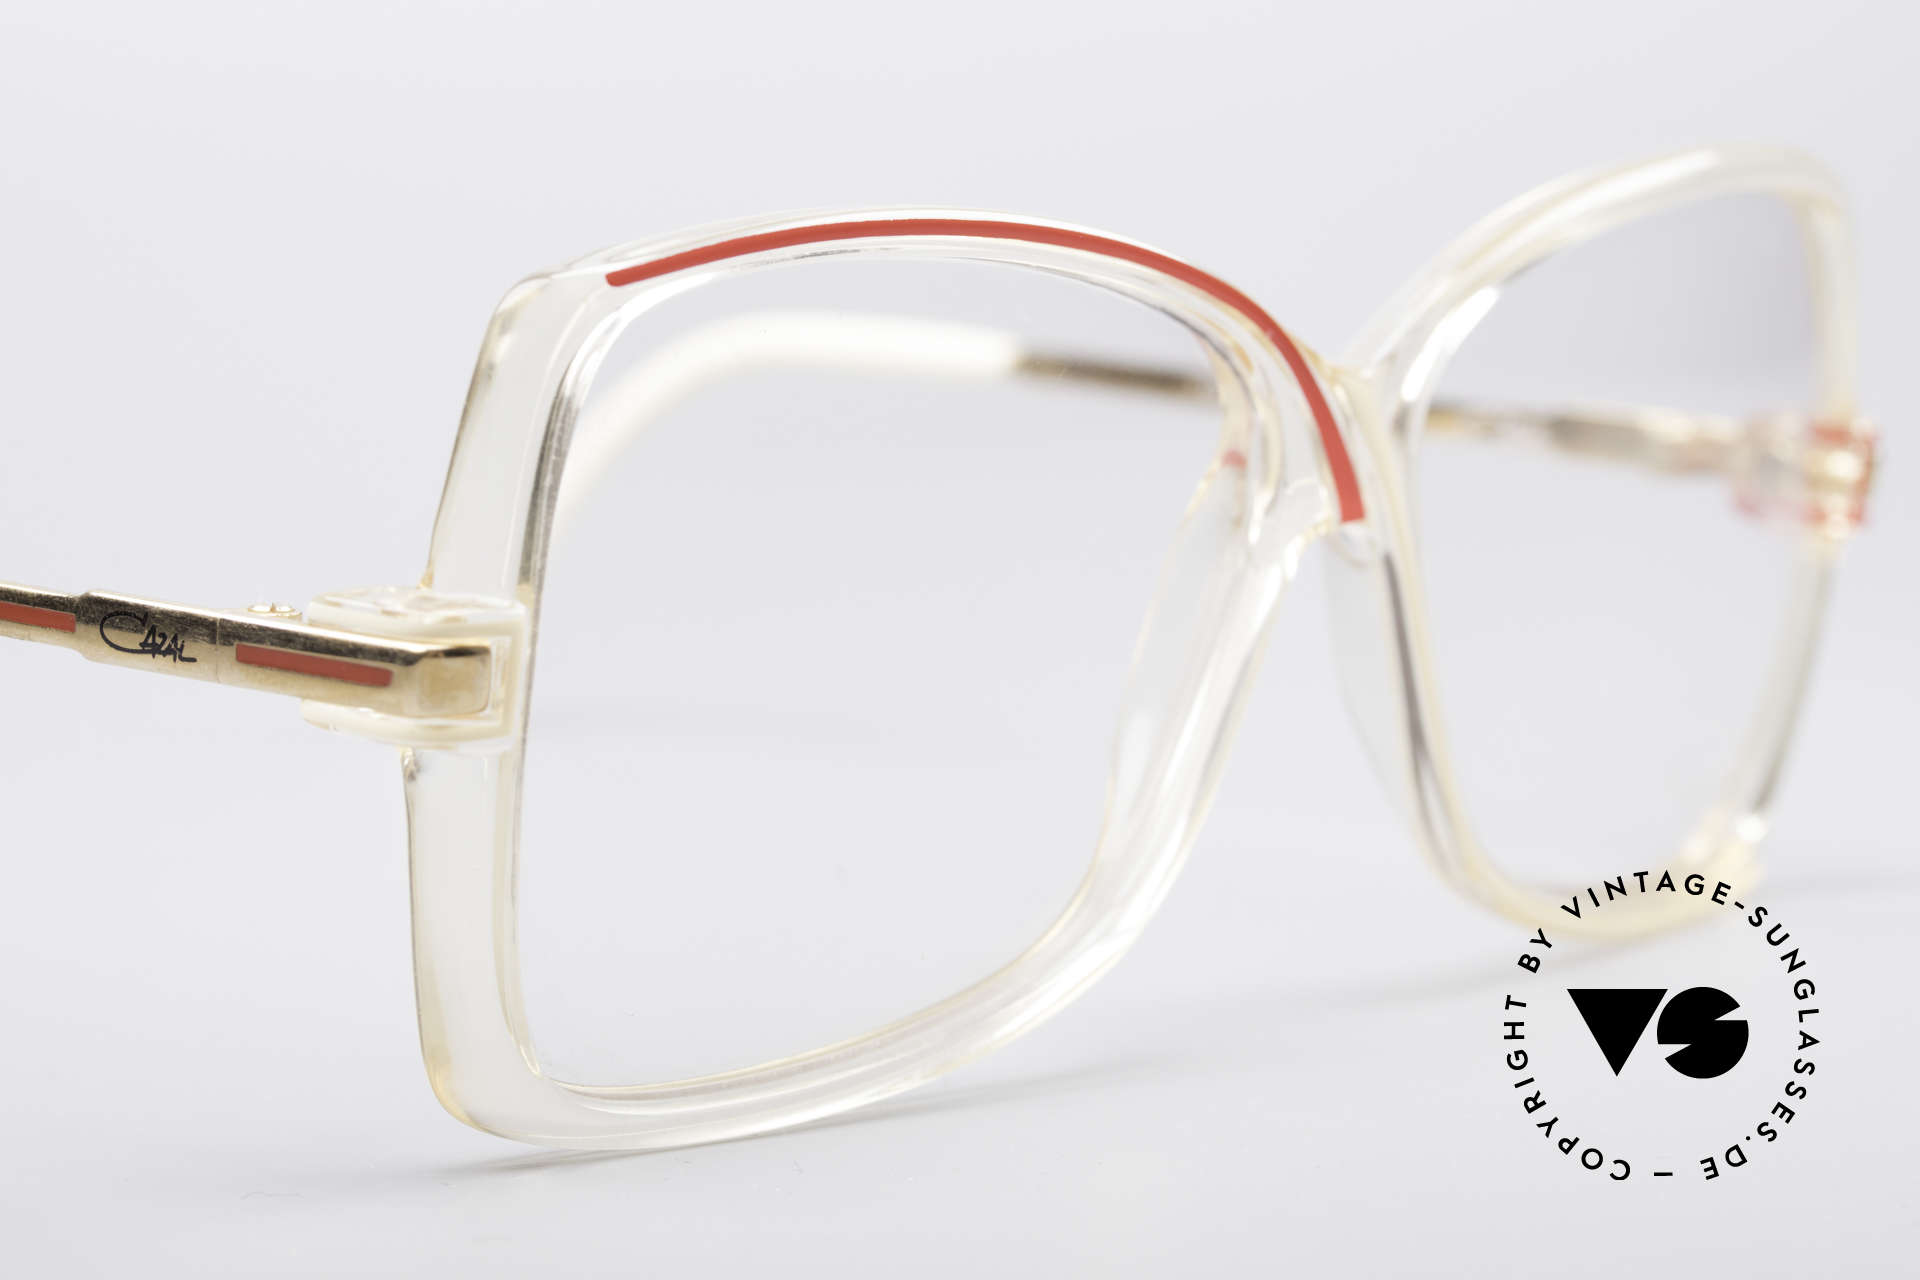 Cazal 175 True Vintage 80's Frame, NO retro fashion, but an old original from 1985, Made for Women